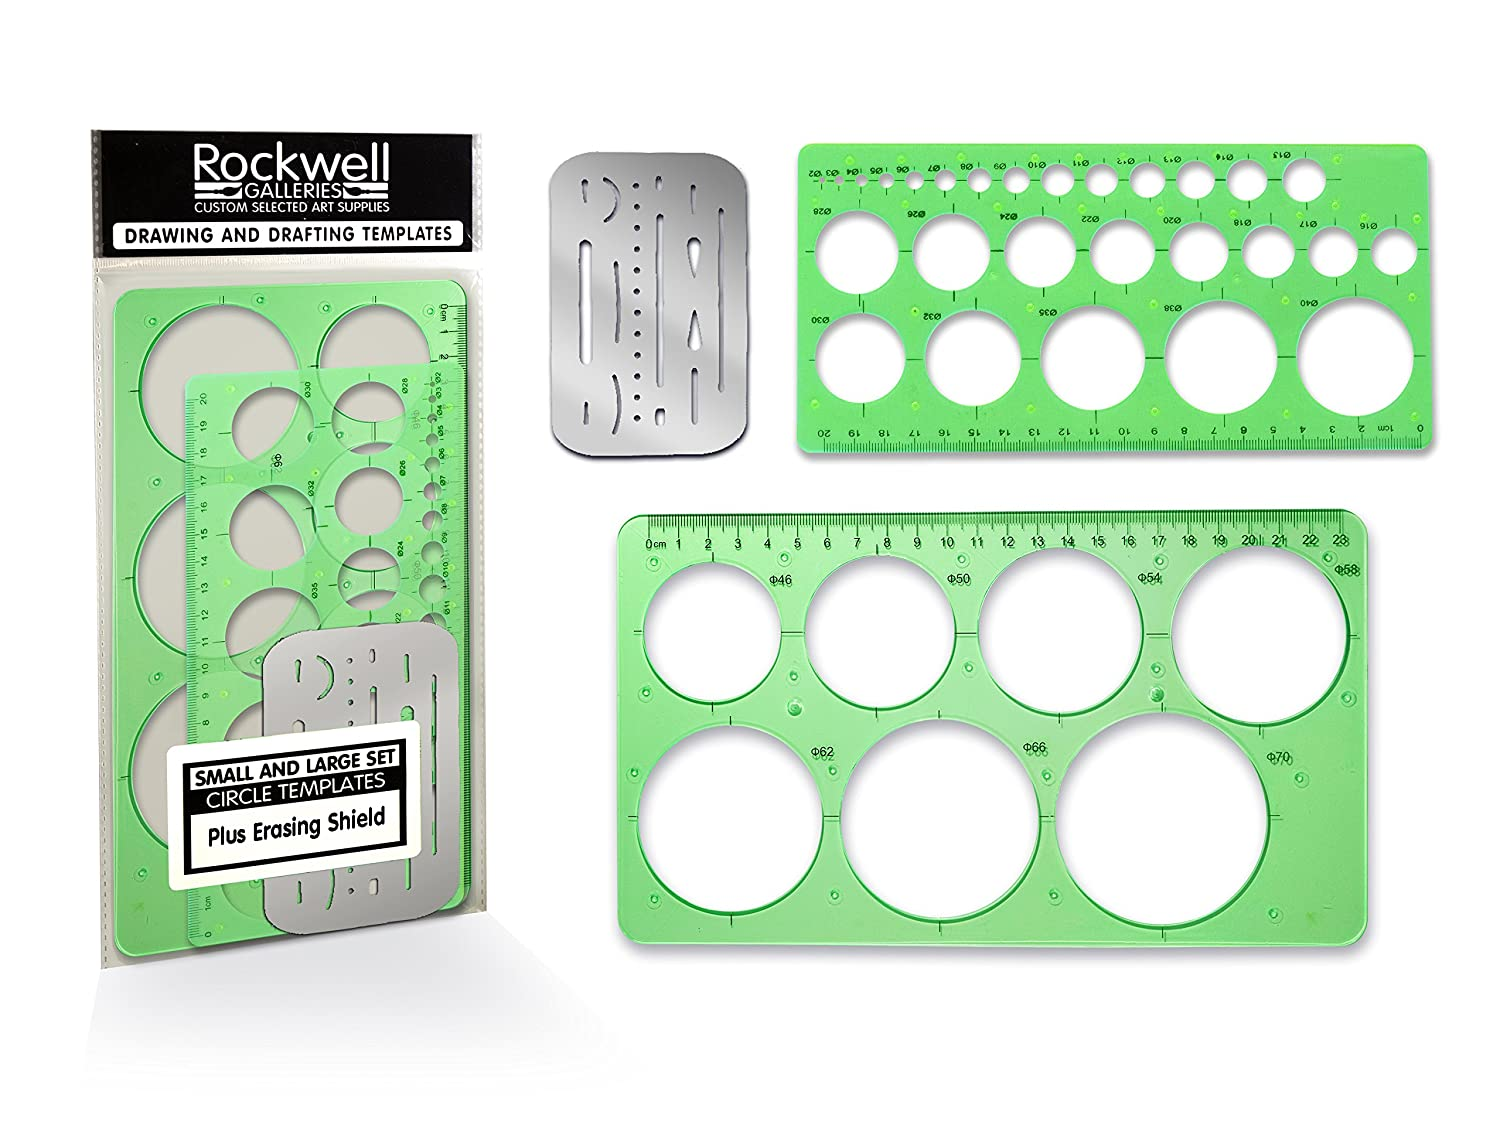 Rockwell Galleries Professional Quality Small and Large Circle Templates Set with Erasing Shield for Drawing, Drafting and Creating by Circle drawing template for office, class or personal drawings. AWF Online Sales 4336946662